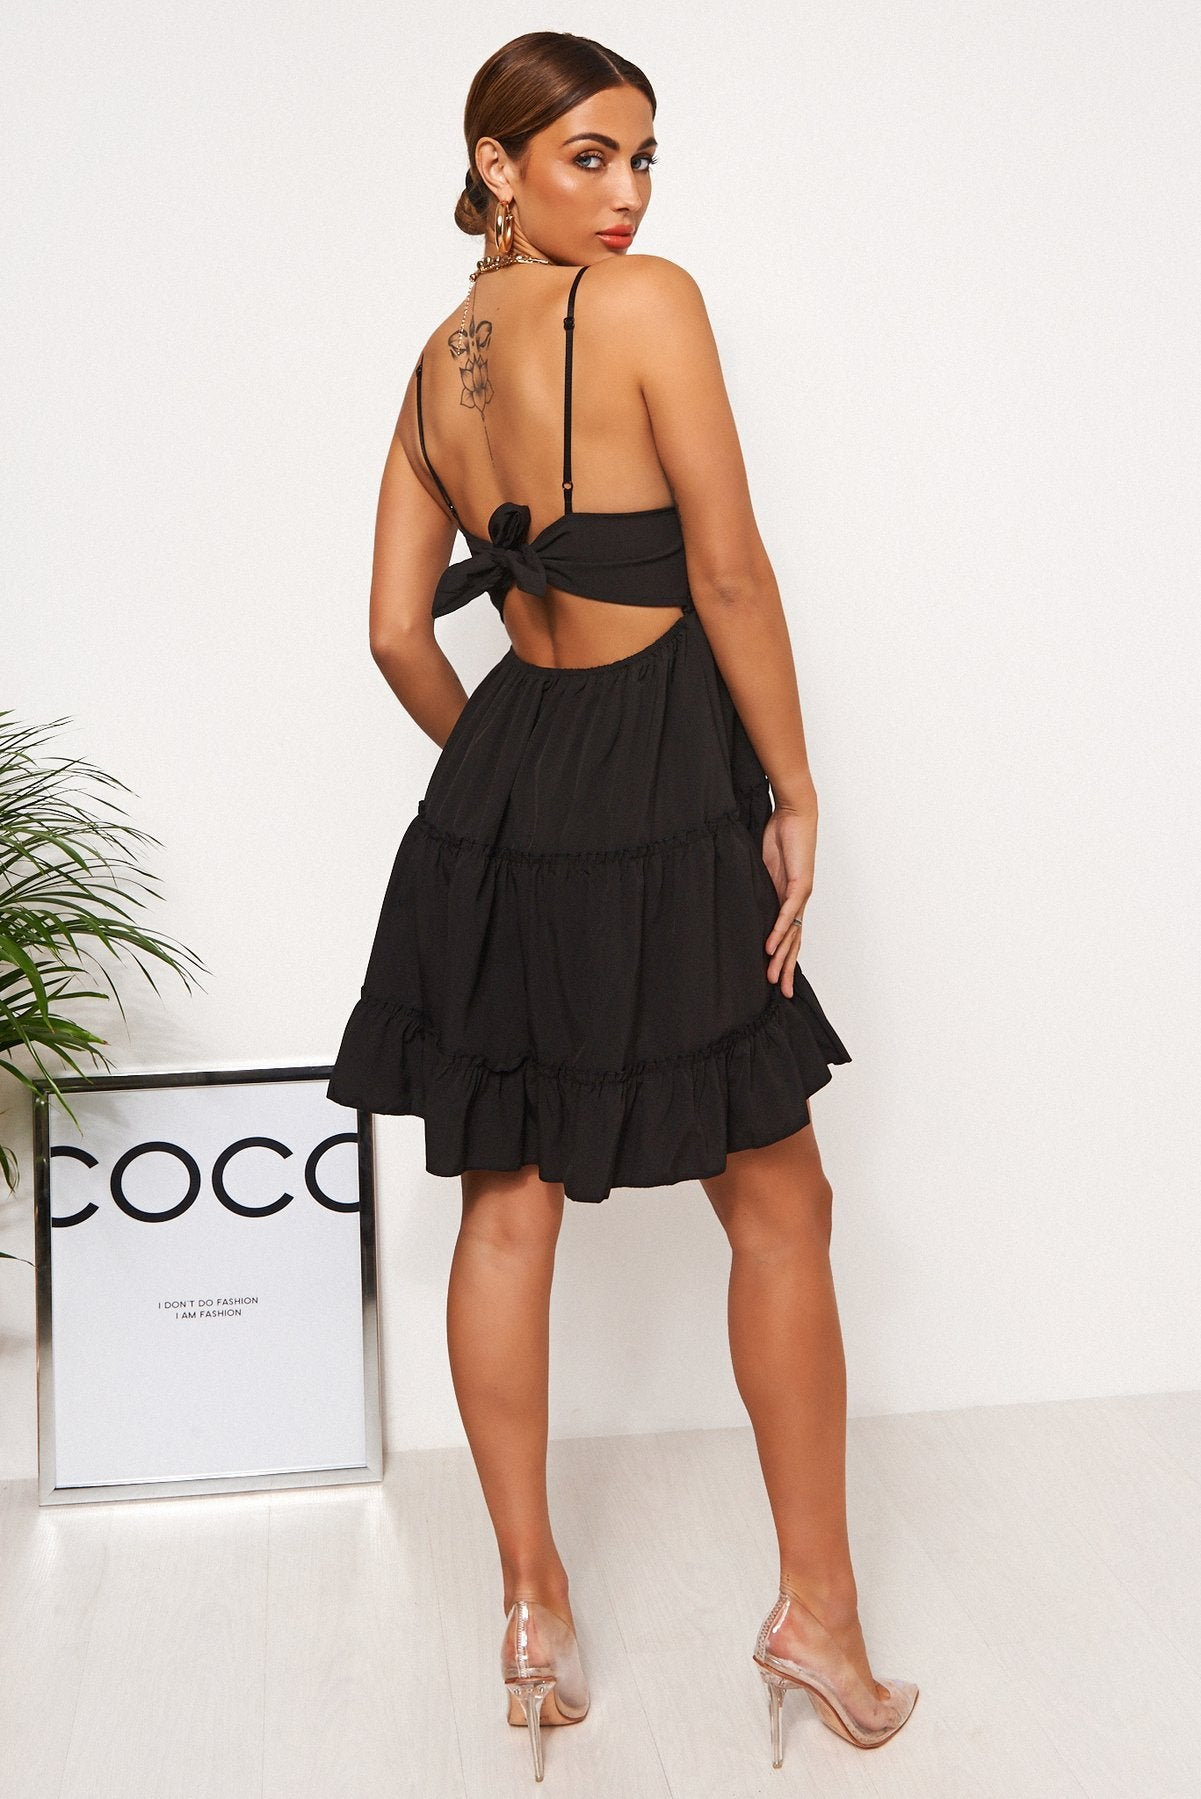 Nicolzie Active-Beautiful Crochet Dress available in Black or White